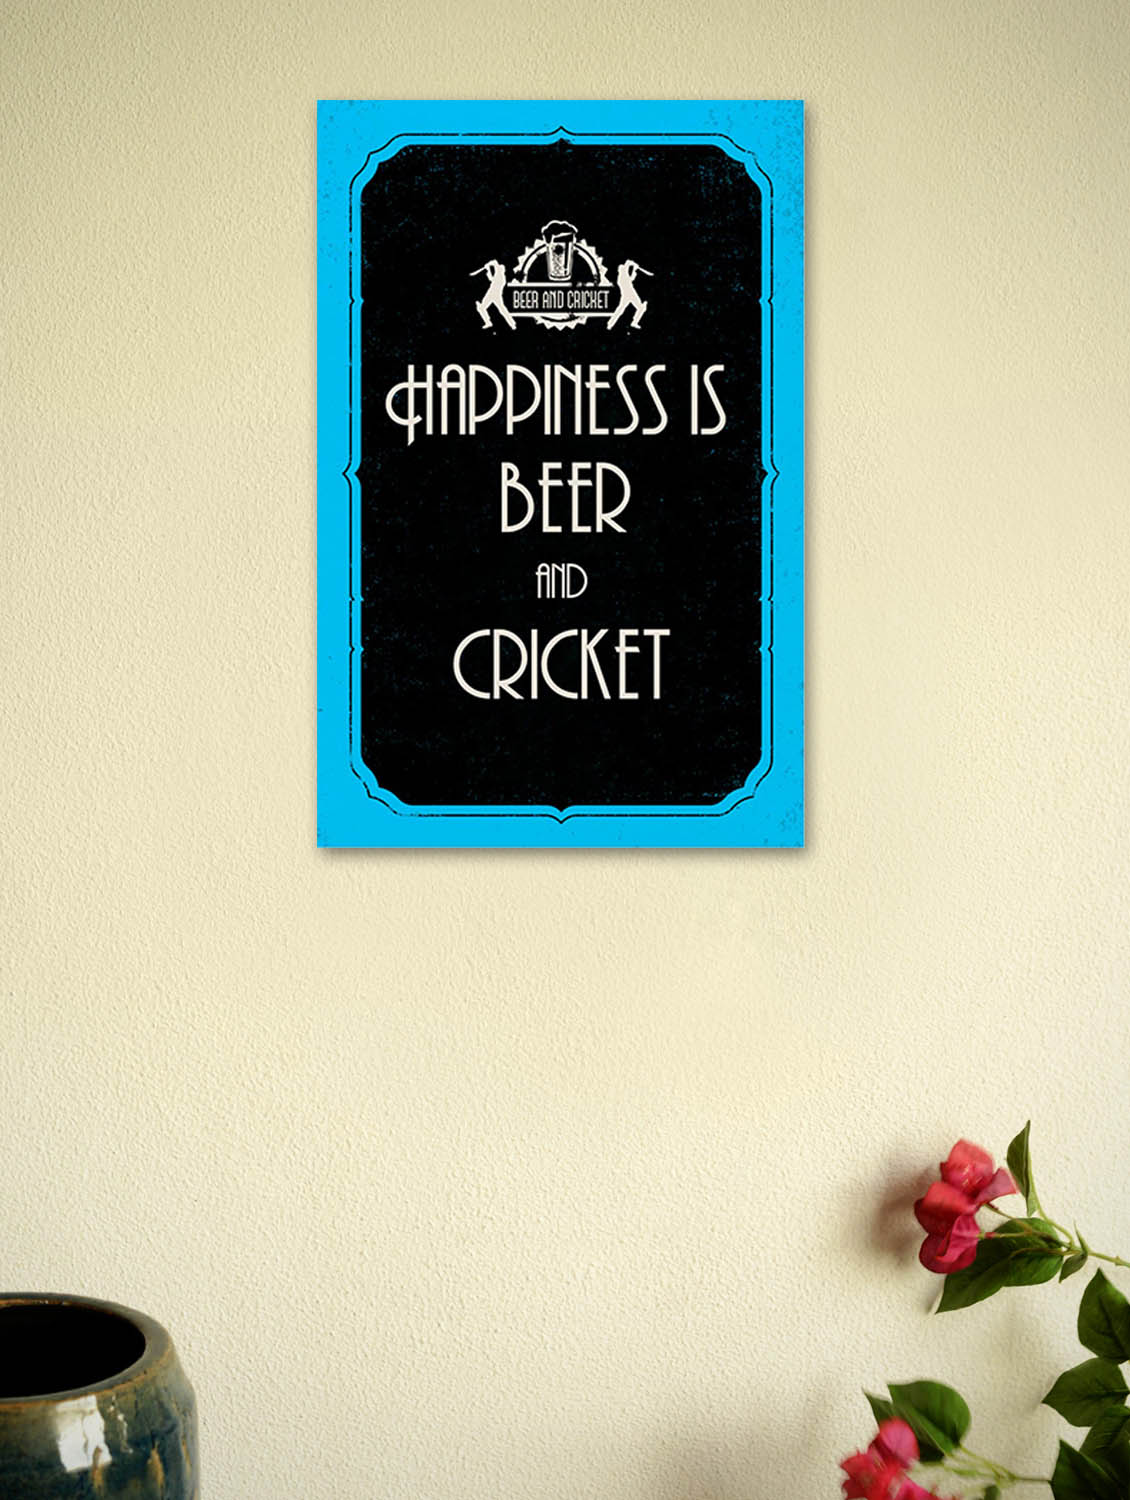 Le Meilleur Buy Happiness Is Beer And Cricket Quotes Poster For Unisex Ce Mois Ci